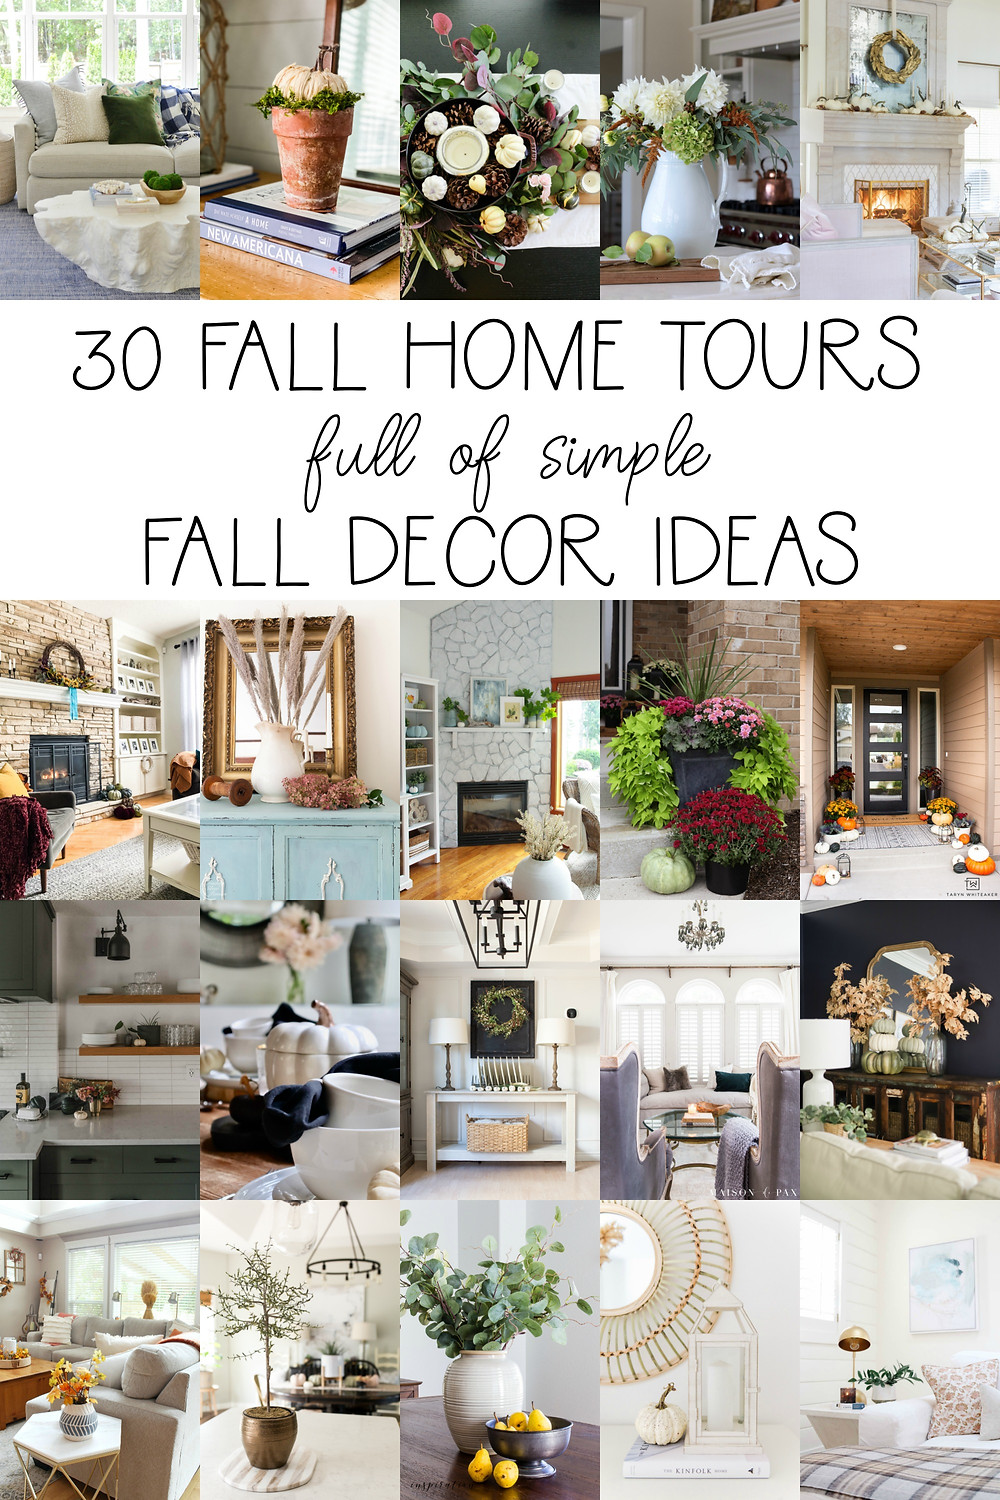 Check out this Fall Home Tour filled with fall florals, fall decor inspiration, a foraged fall tablescape, fall bedroom ideas and fall front porch. This home tour is filled with mums, pumpkins, eucalyptus and fall greenery. #fallinspo #falldecor #falldecorating #modernhome